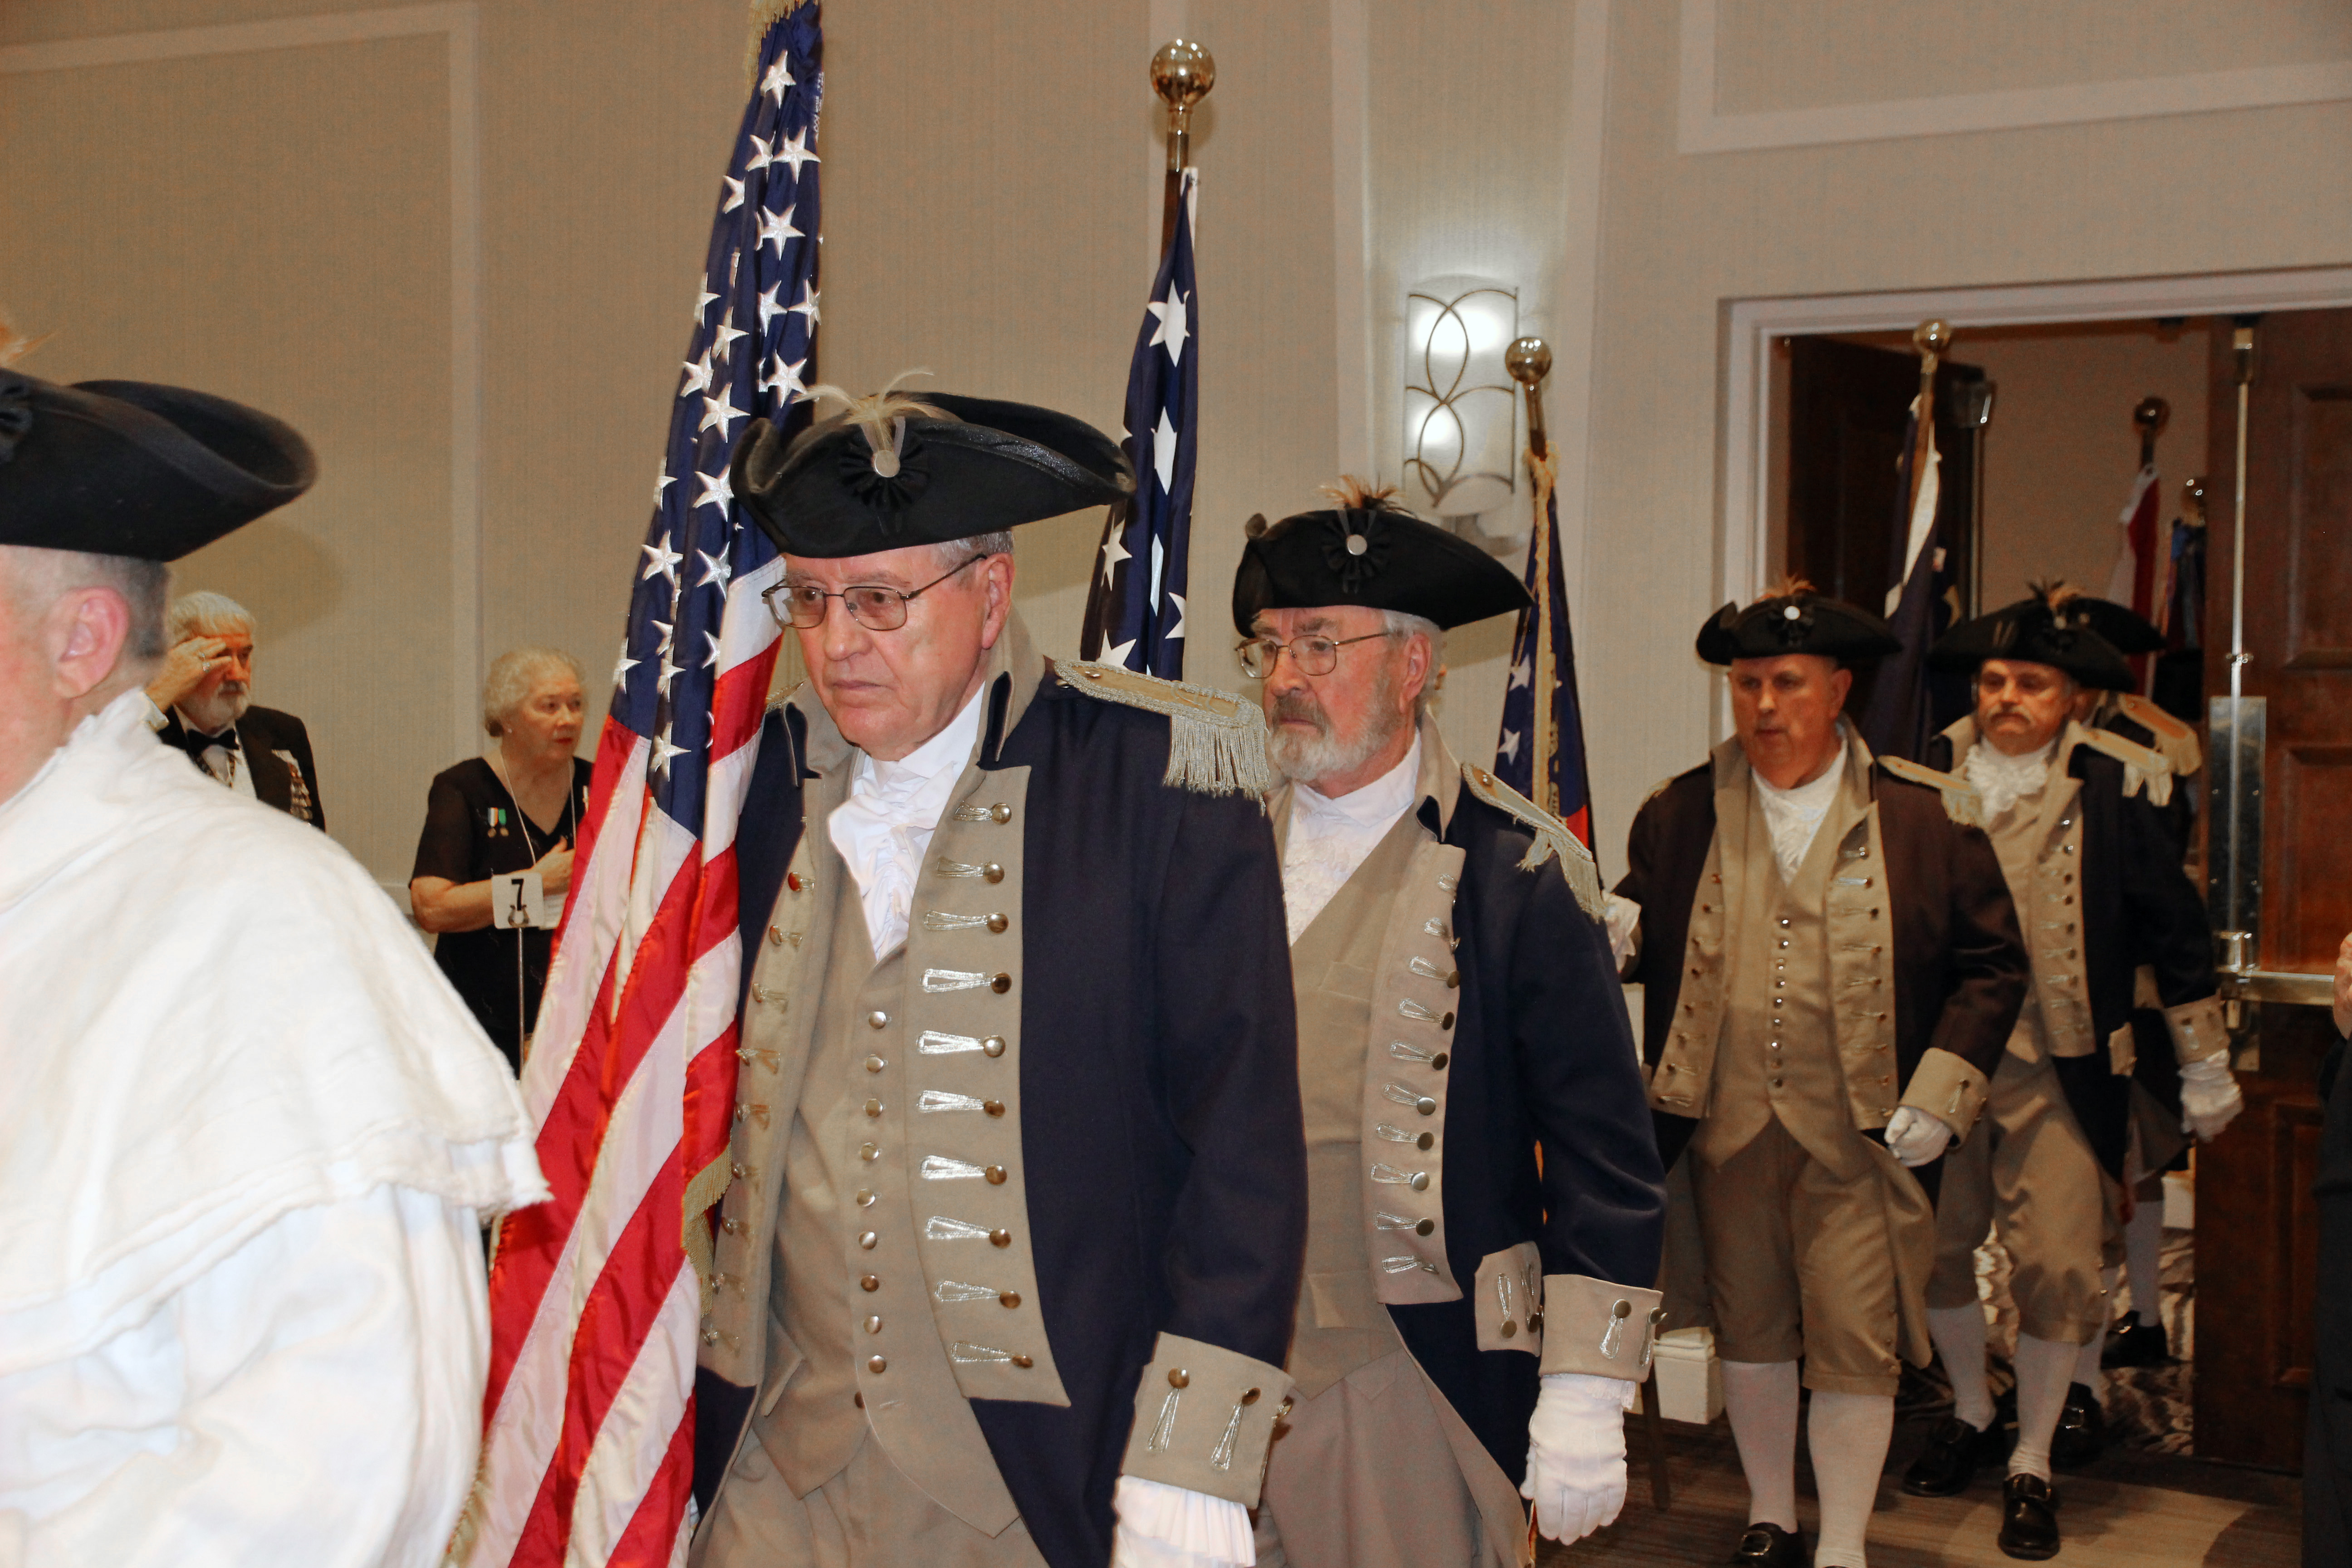 american revolution s effects on american society Approximately 60,000 loyalists ended up leaving america because of revolution loyalists came from all ranks of american society, and many lived the rest of their lives in exile from their homeland a clause in the treaty of paris was supposed to.